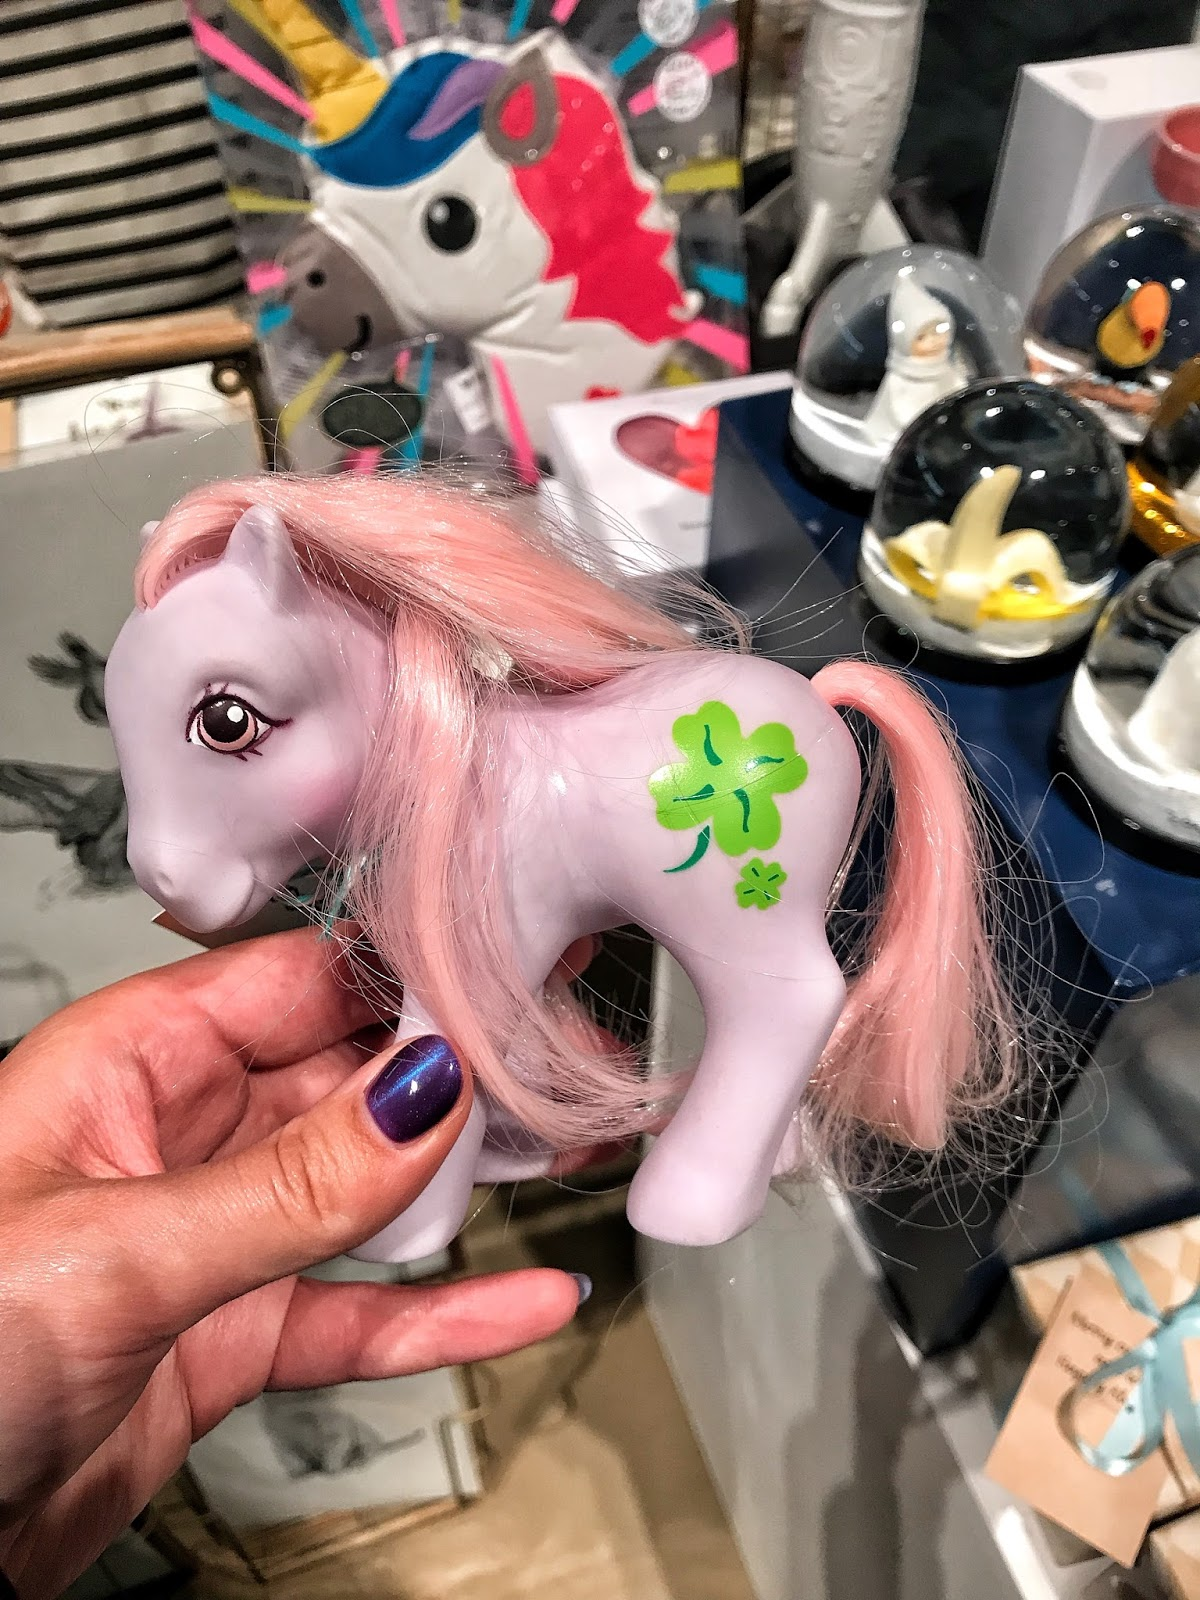 My little pony Toy Collectiv Concept Store